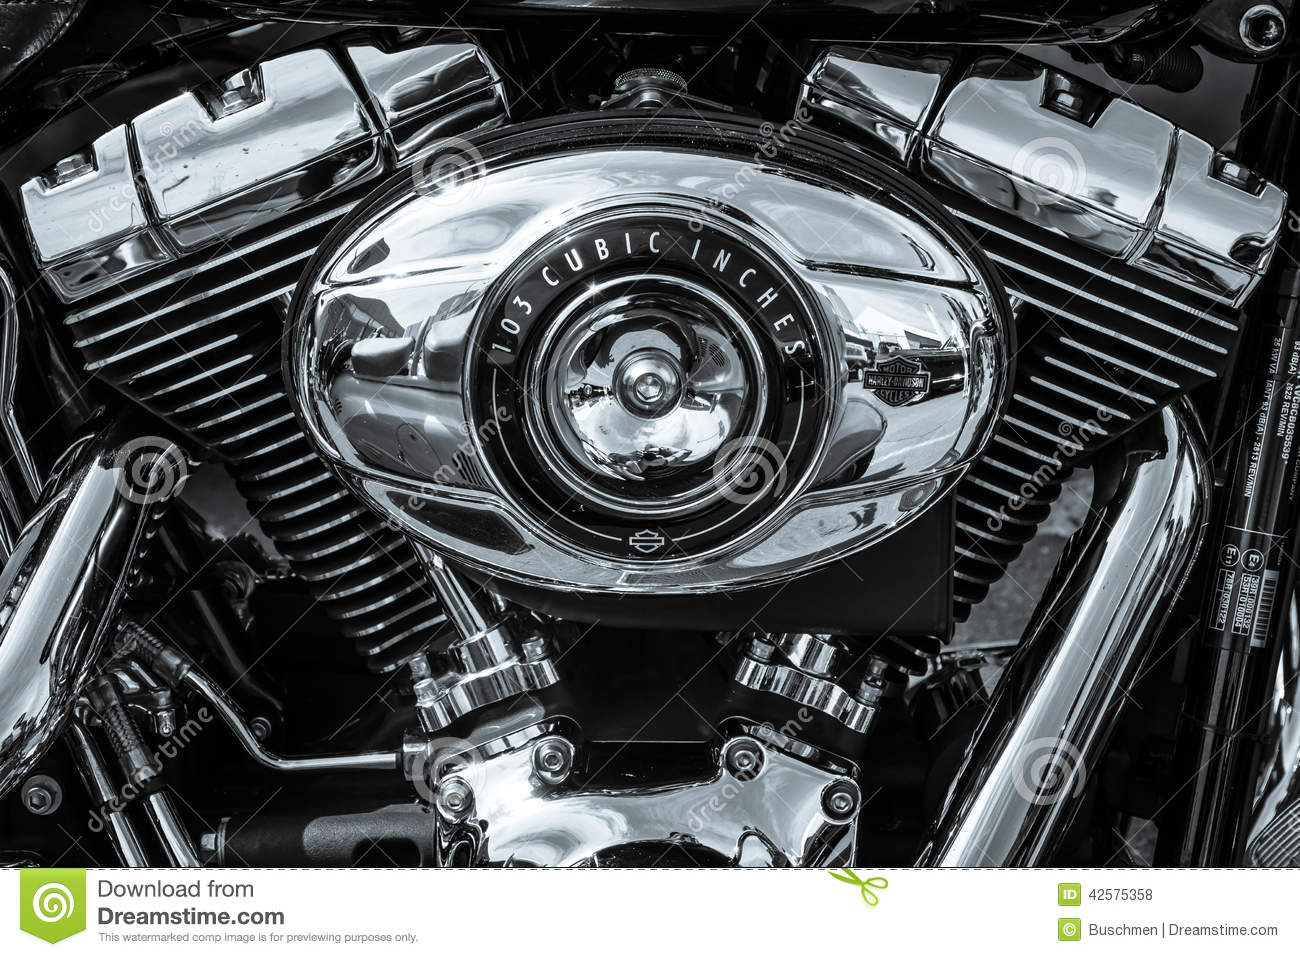 Twin cam 103 engine closeup of motorcycle harley davidson softail twin cam 103 engine closeup of motorcycle harley davidson softail pooptronica